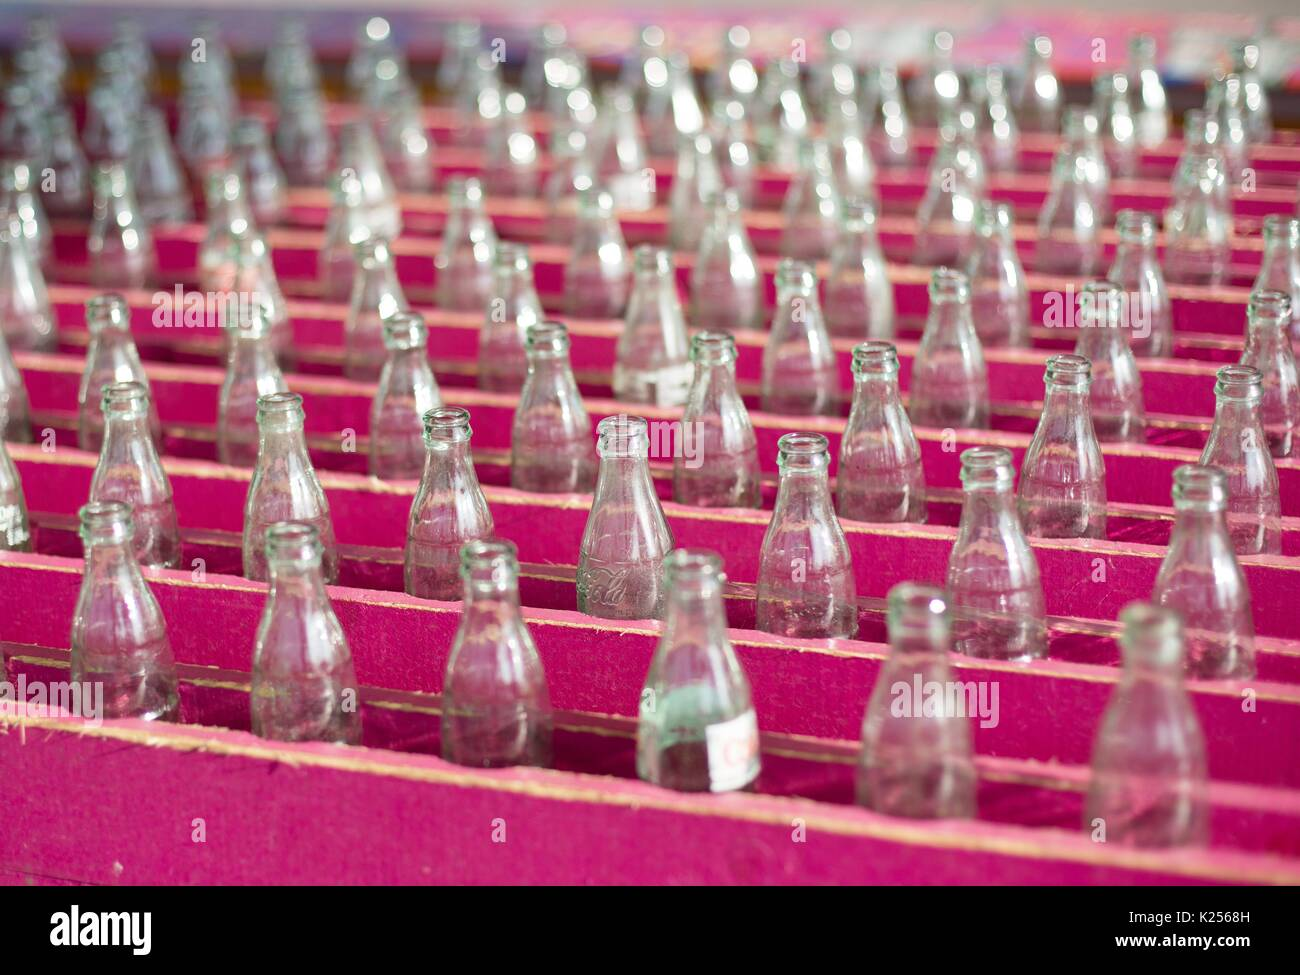 Rows of Coke bottles make up part of a ring toss game at the Minnesota State Fair. - Stock Image